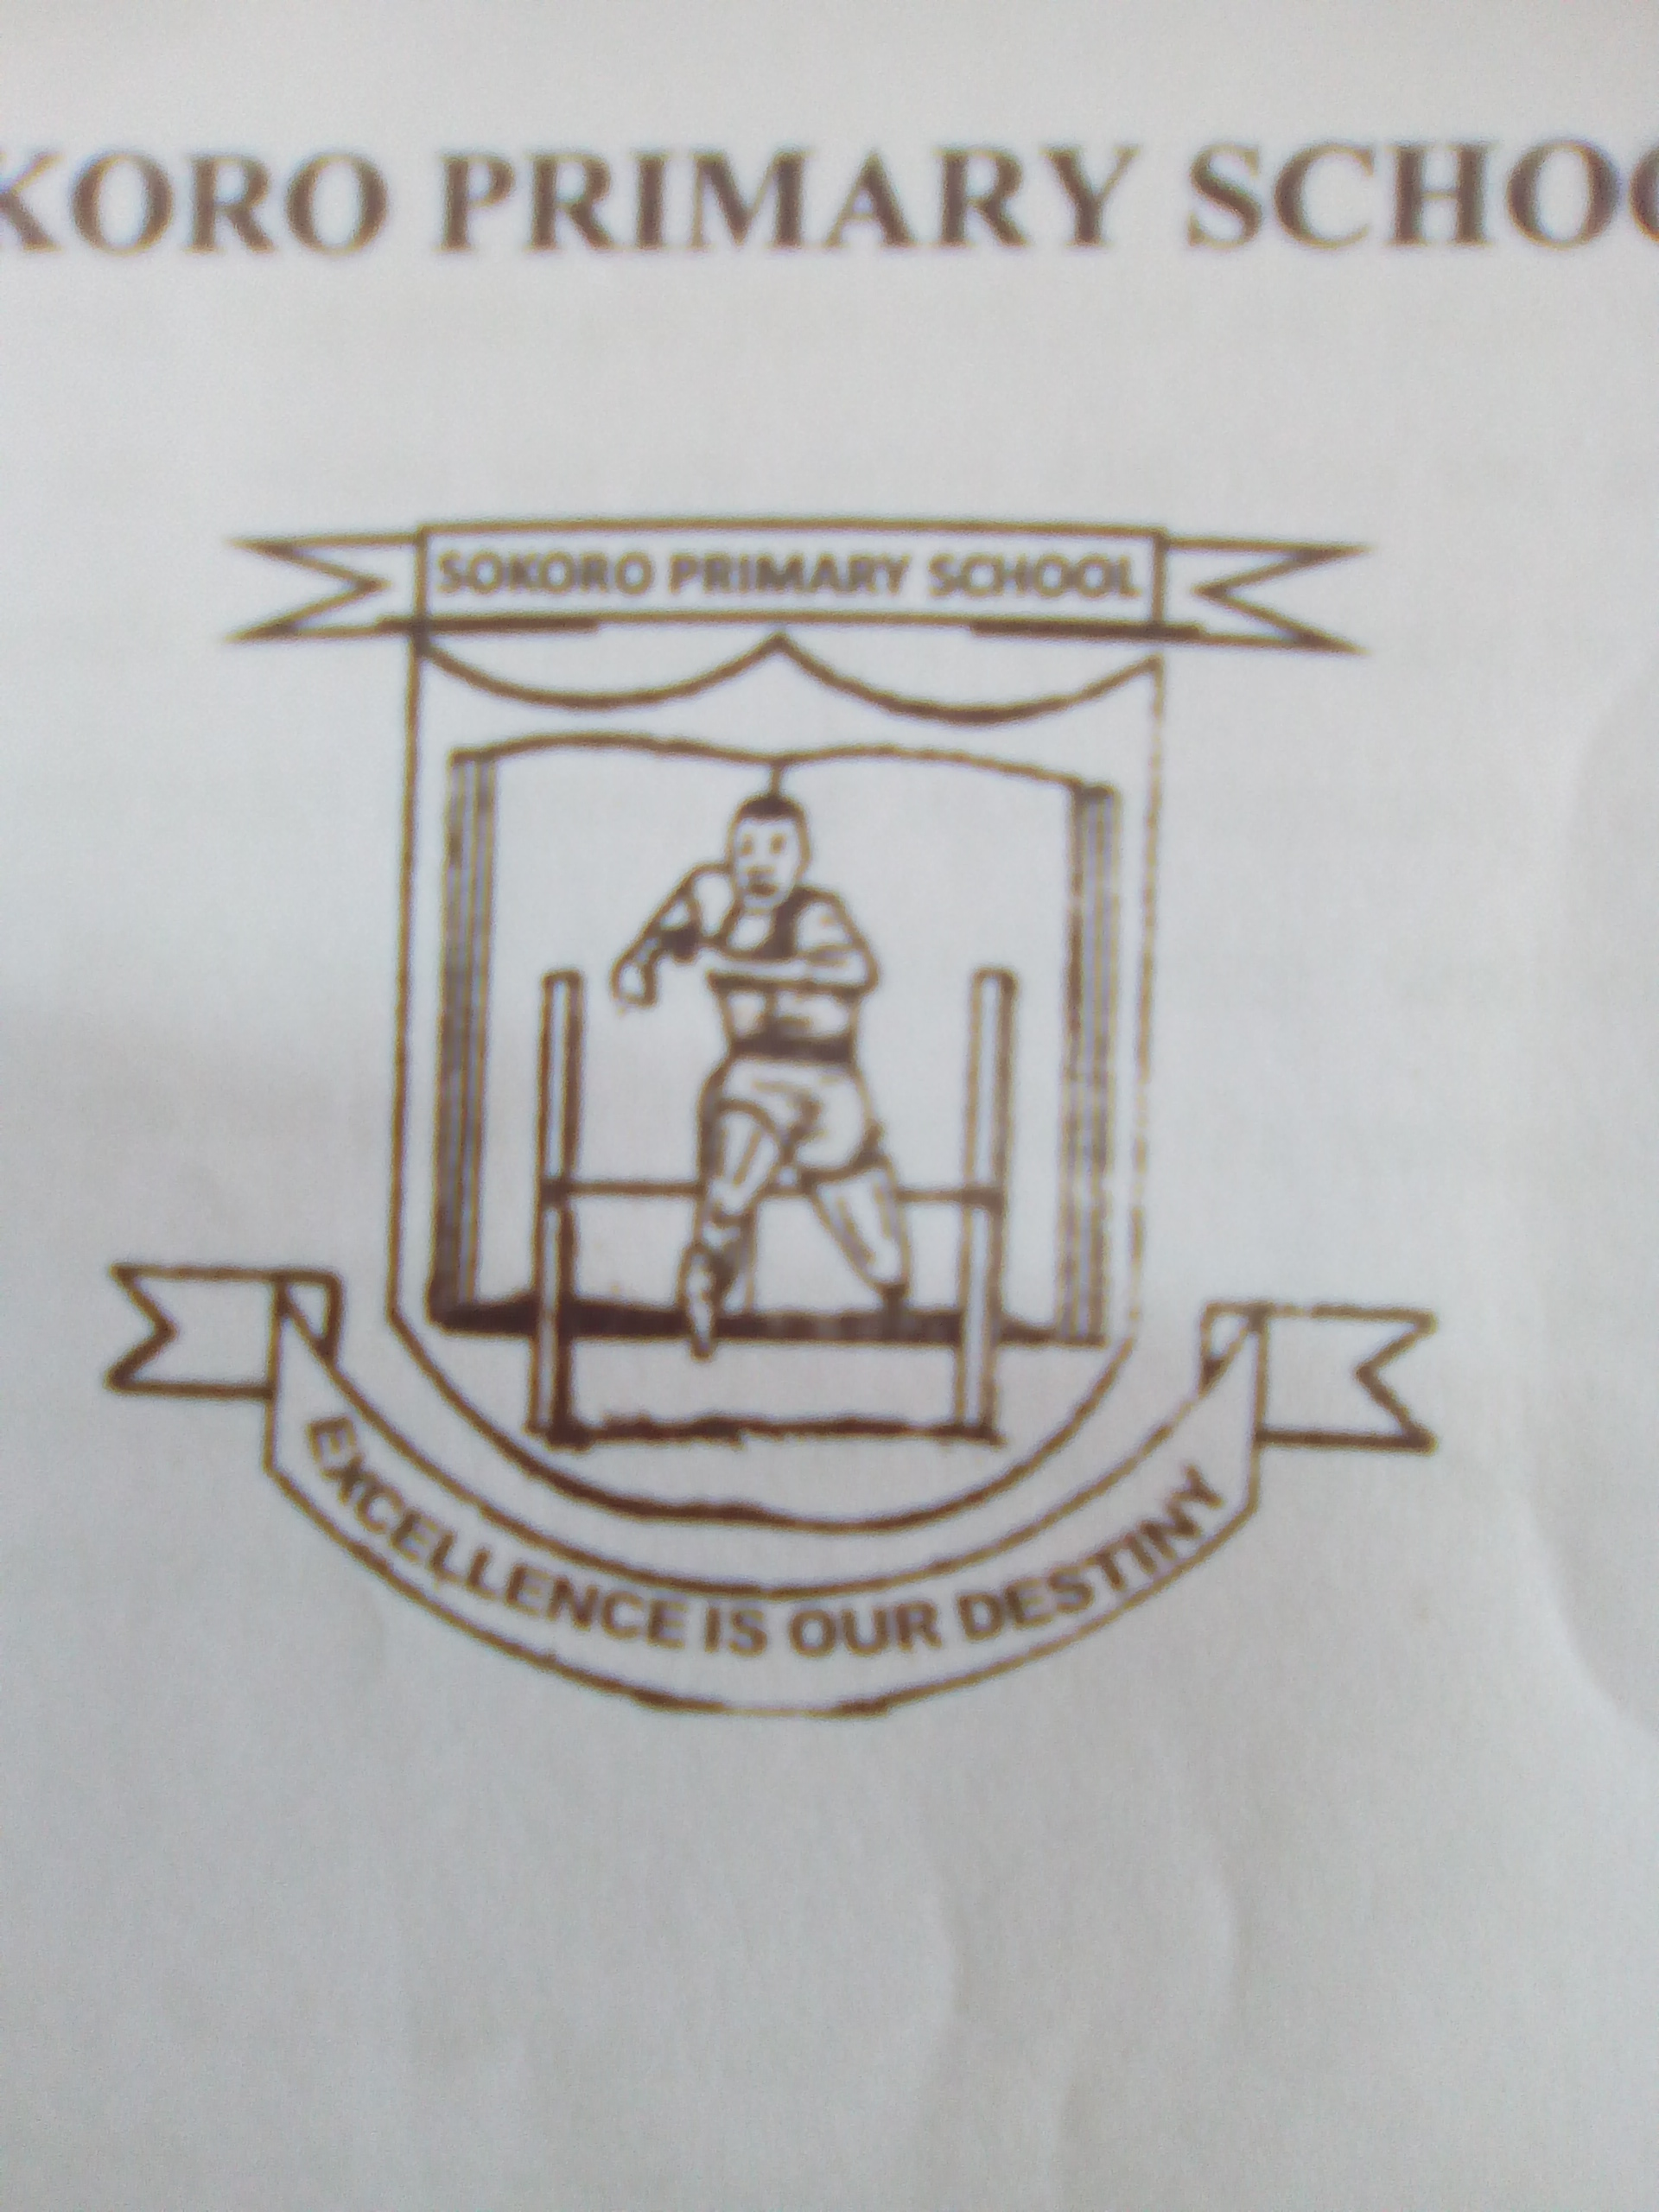 Sokoro Primary School